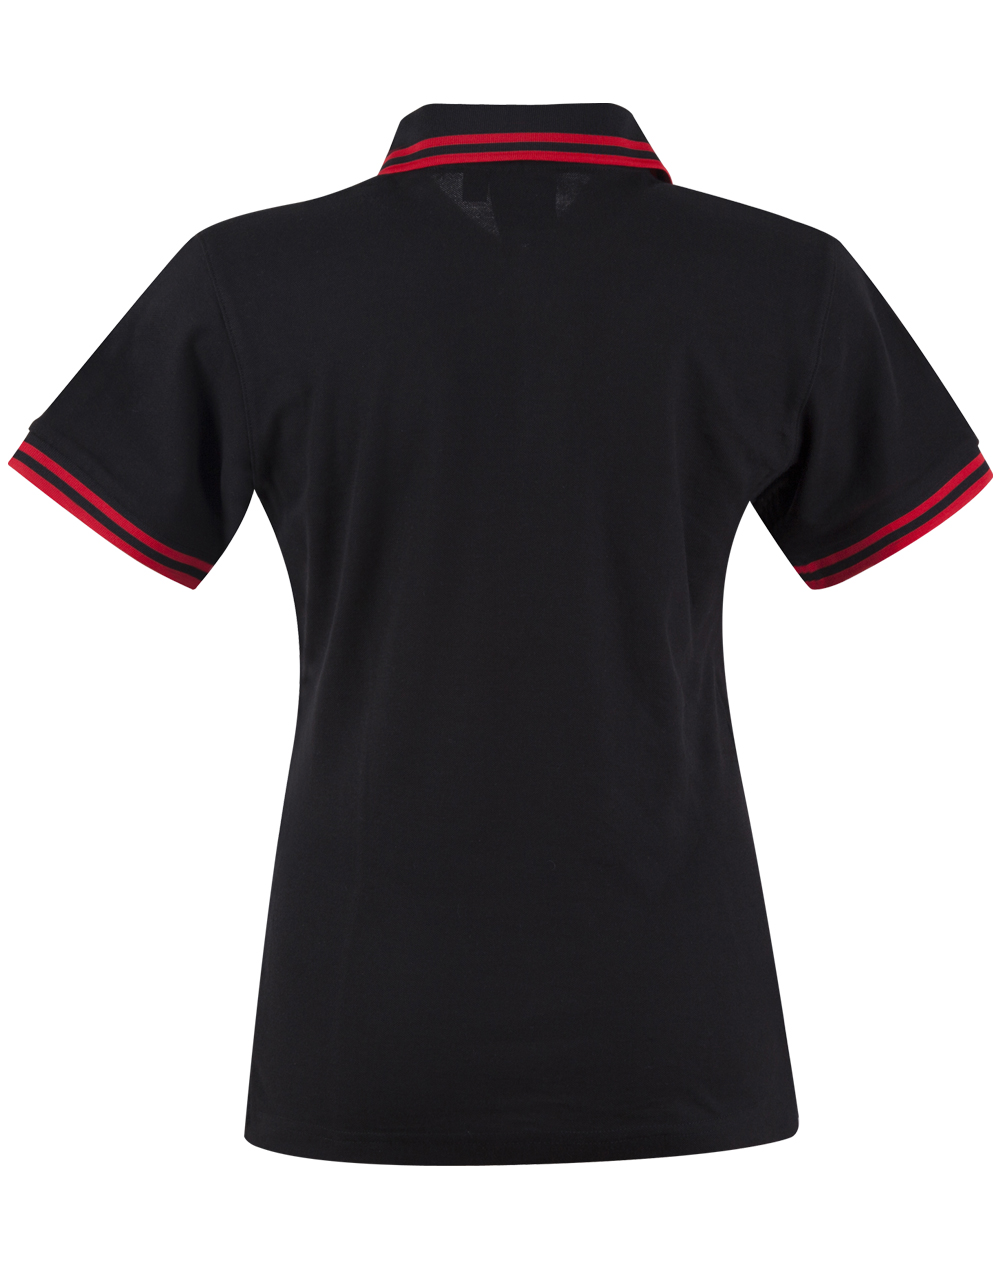 https://s3-ap-southeast-1.amazonaws.com/ws-imgs/POLOSHIRTS/PS66_BlackRed_Back.jpg